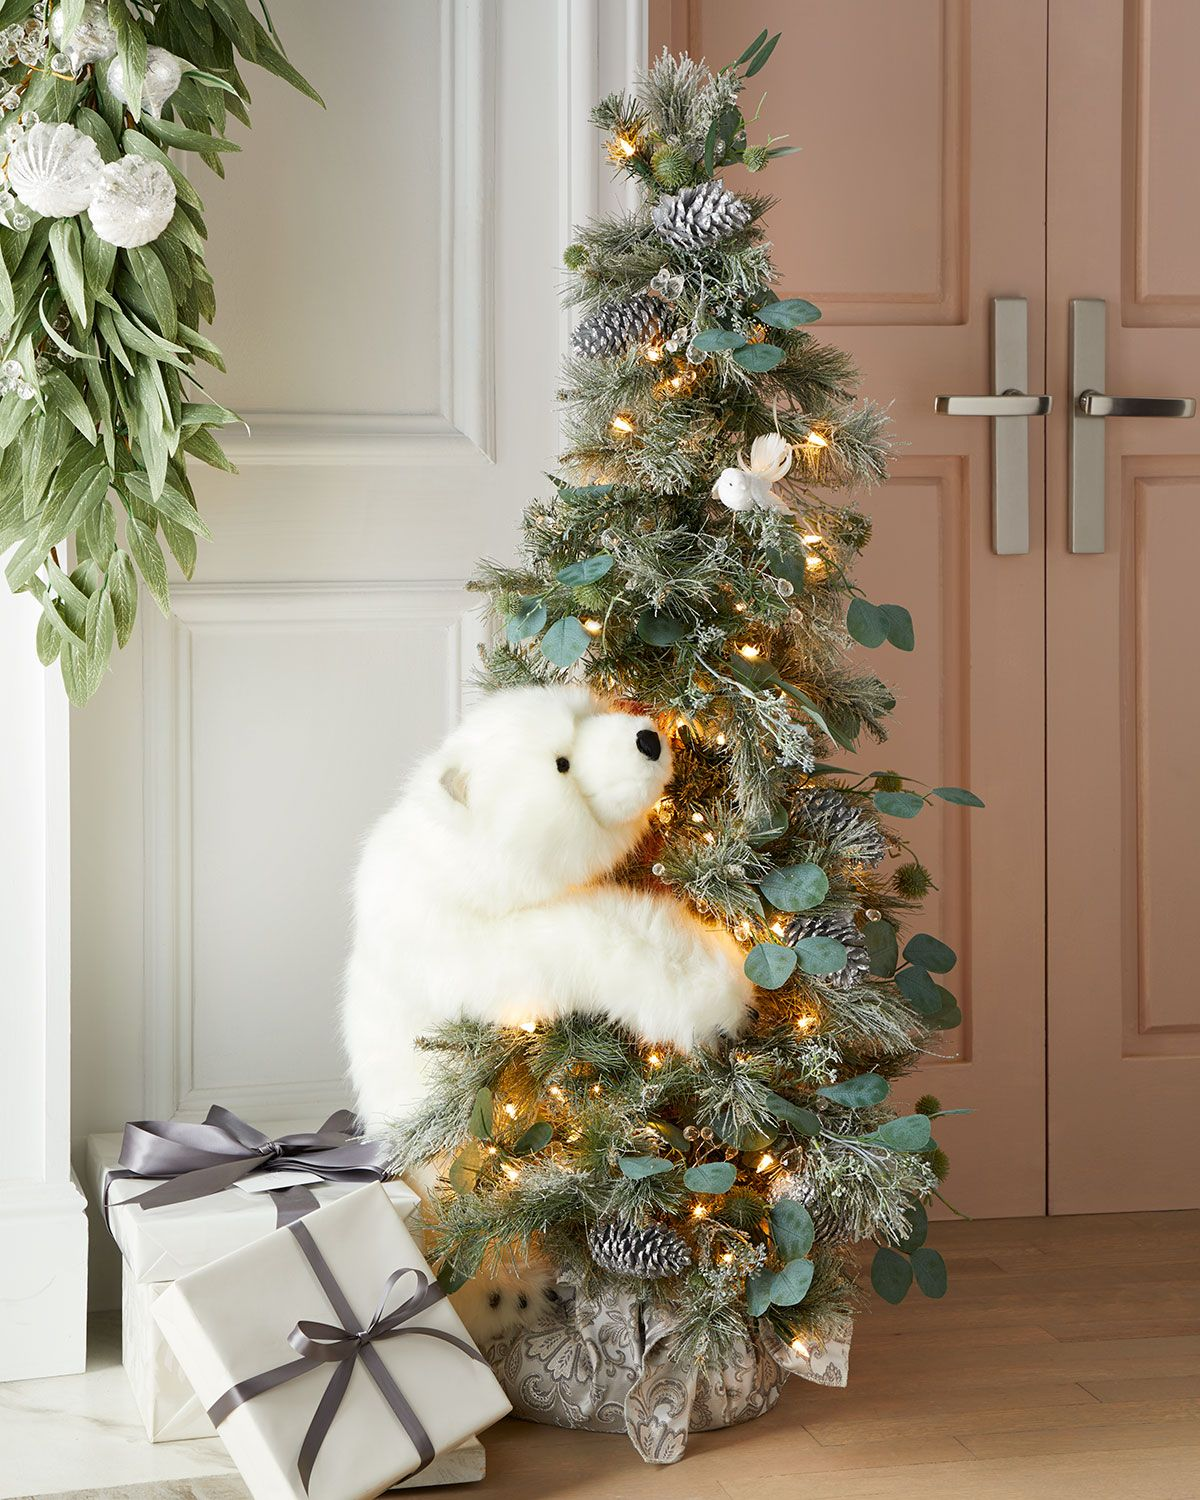 Ditz Designs By The Hen House Crystal White Tree With Polar Bears Christmas Tree Themes Beautiful Christmas Trees Christmas Diy